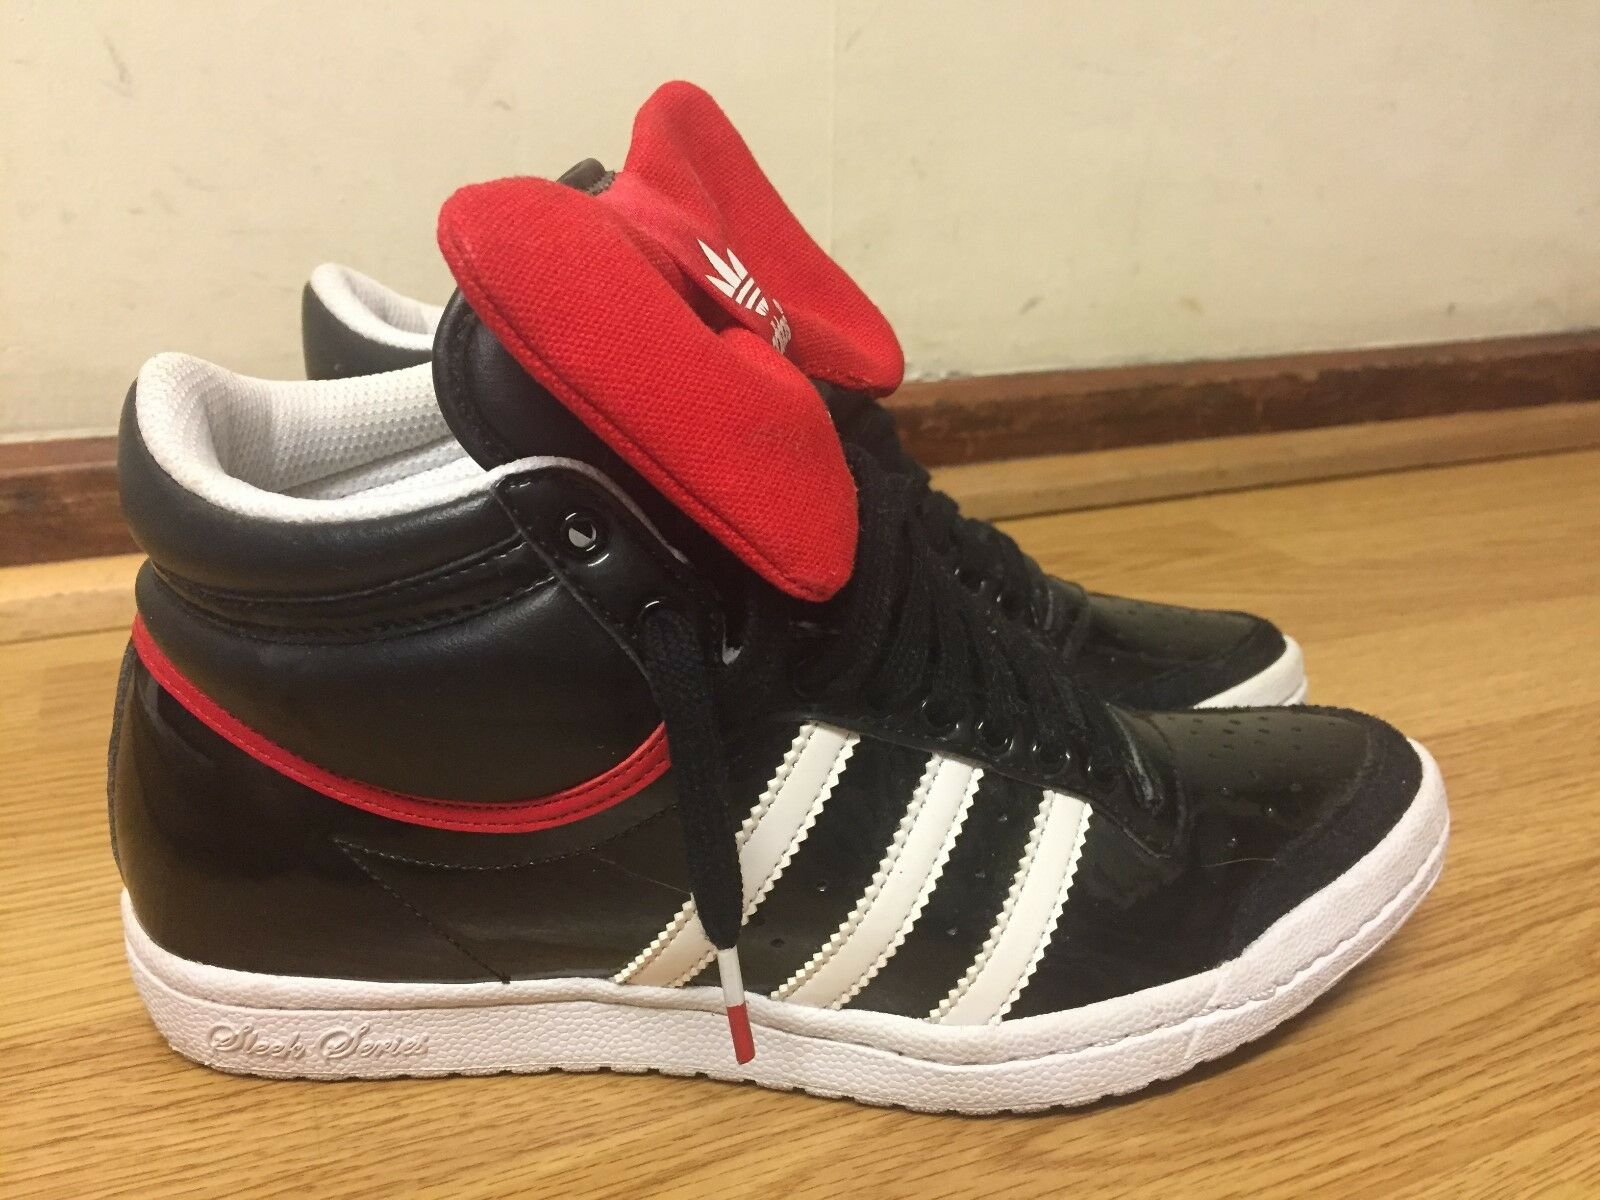 ADIDAS WOMENS TRAINERS SIZE   MADE IN VIETNAM